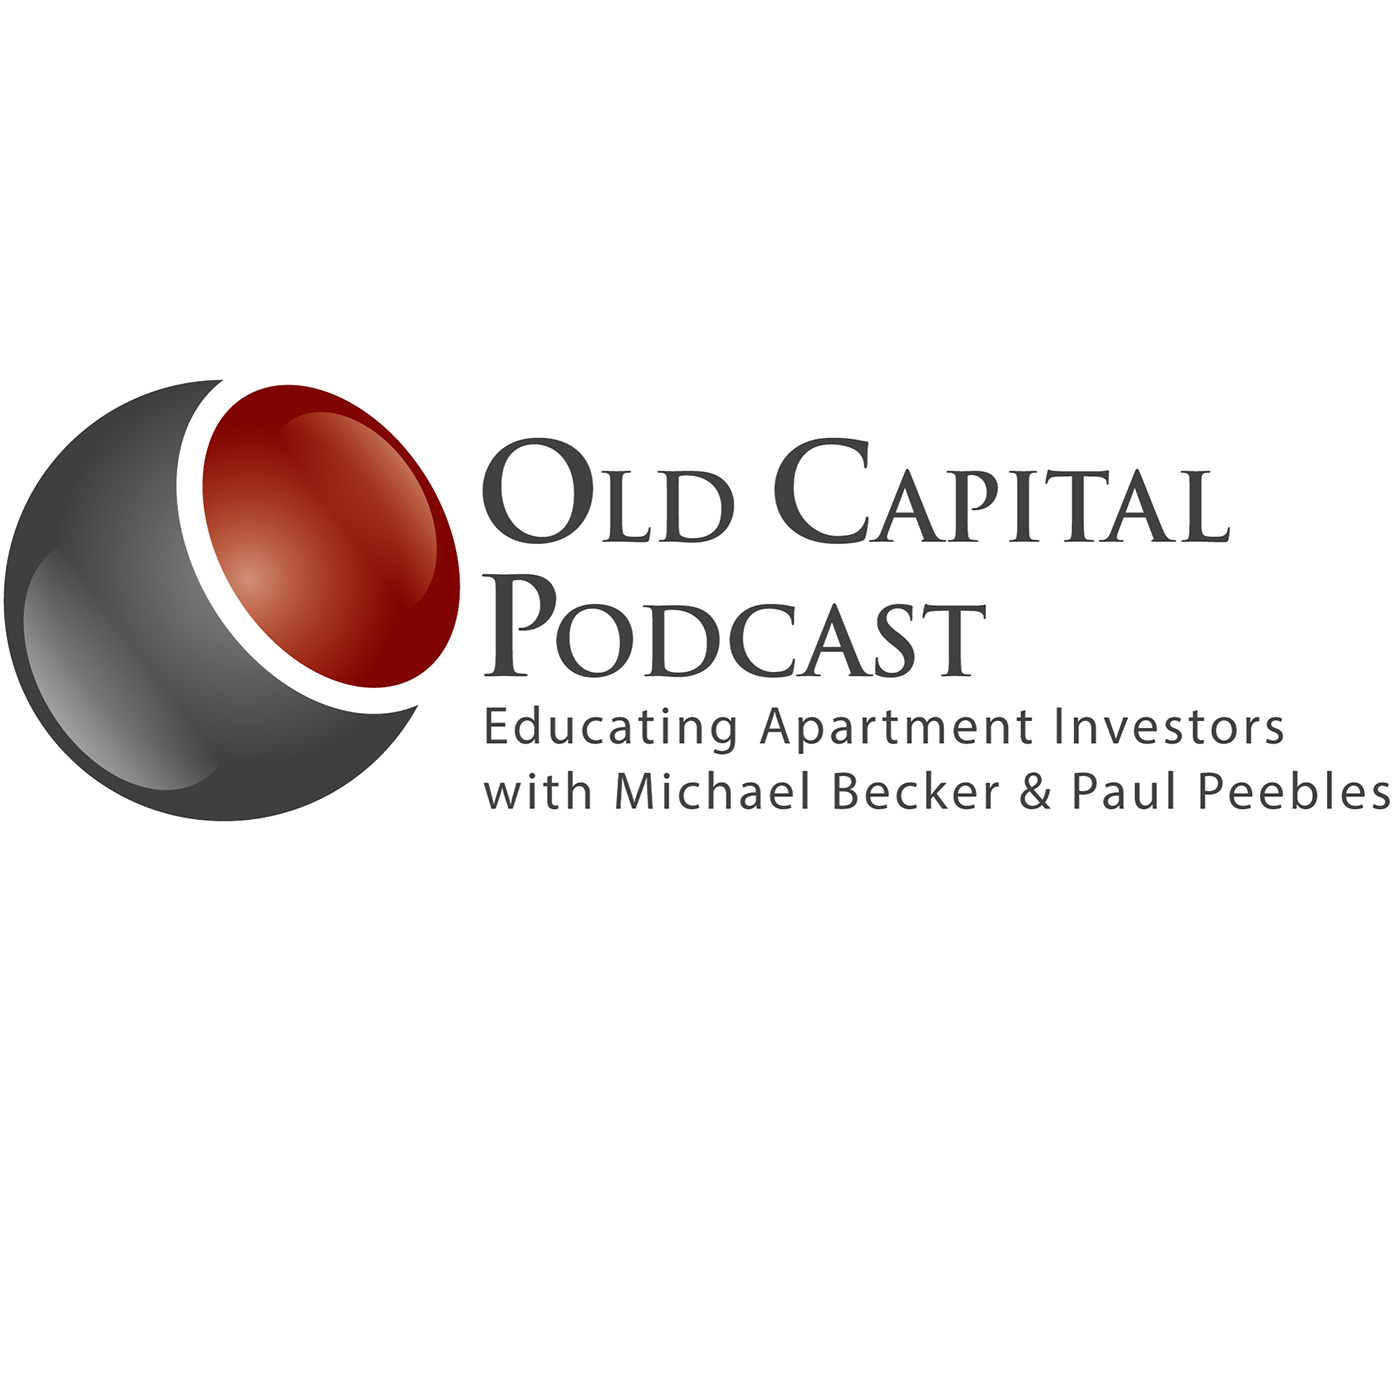 Old Capital Real Estate Investing Podcast with Michael Becker & Paul Peebles show image